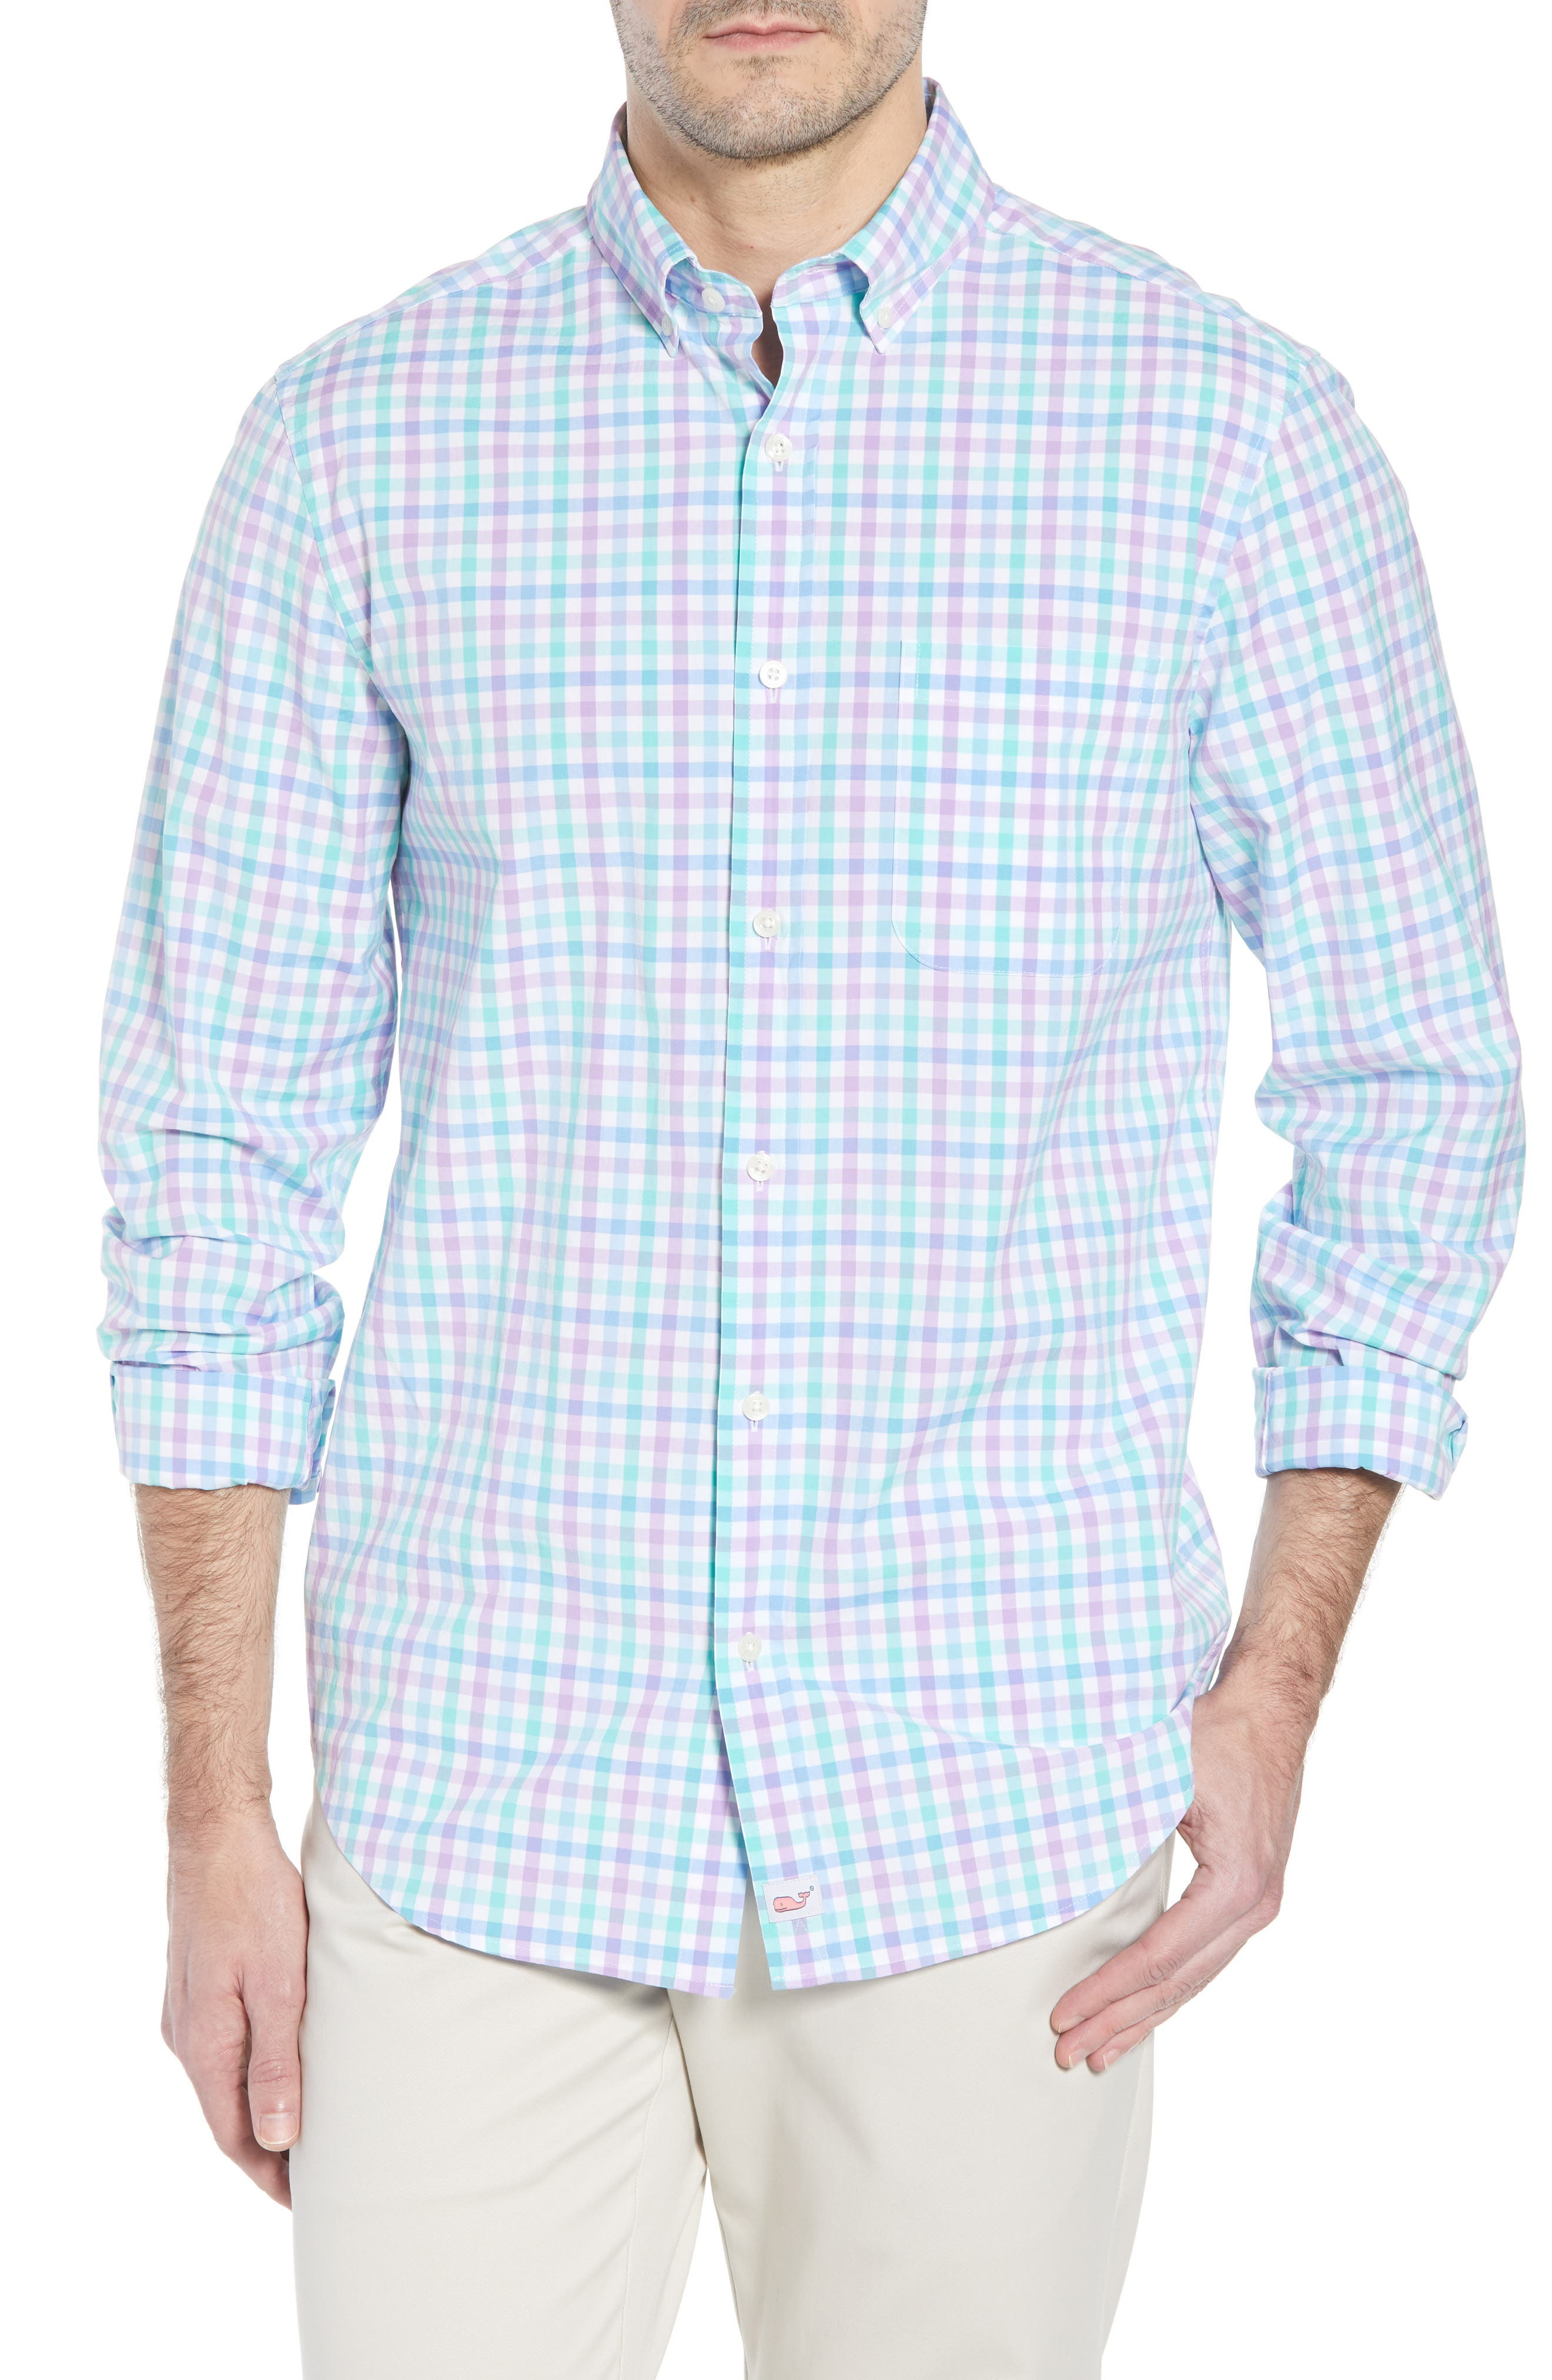 VINEYARD VINES,                             Murray Classic Fit Stretch Check Sport Shirt,                             Main thumbnail 1, color,                             526